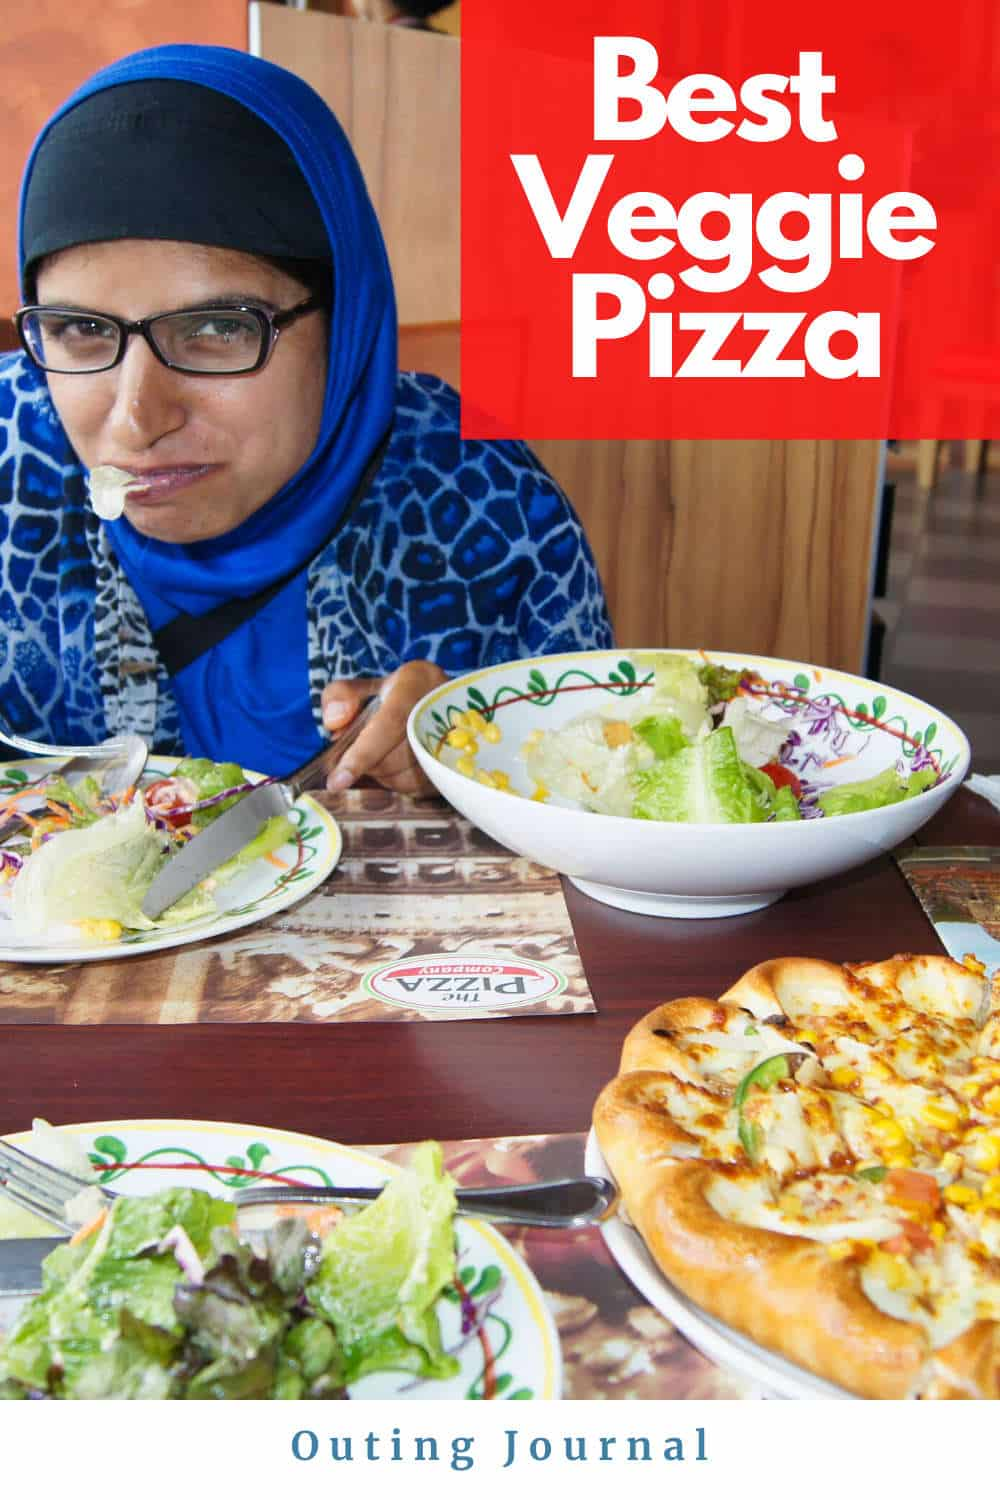 Blue Hijab Girl Trying the Veggie Pizza